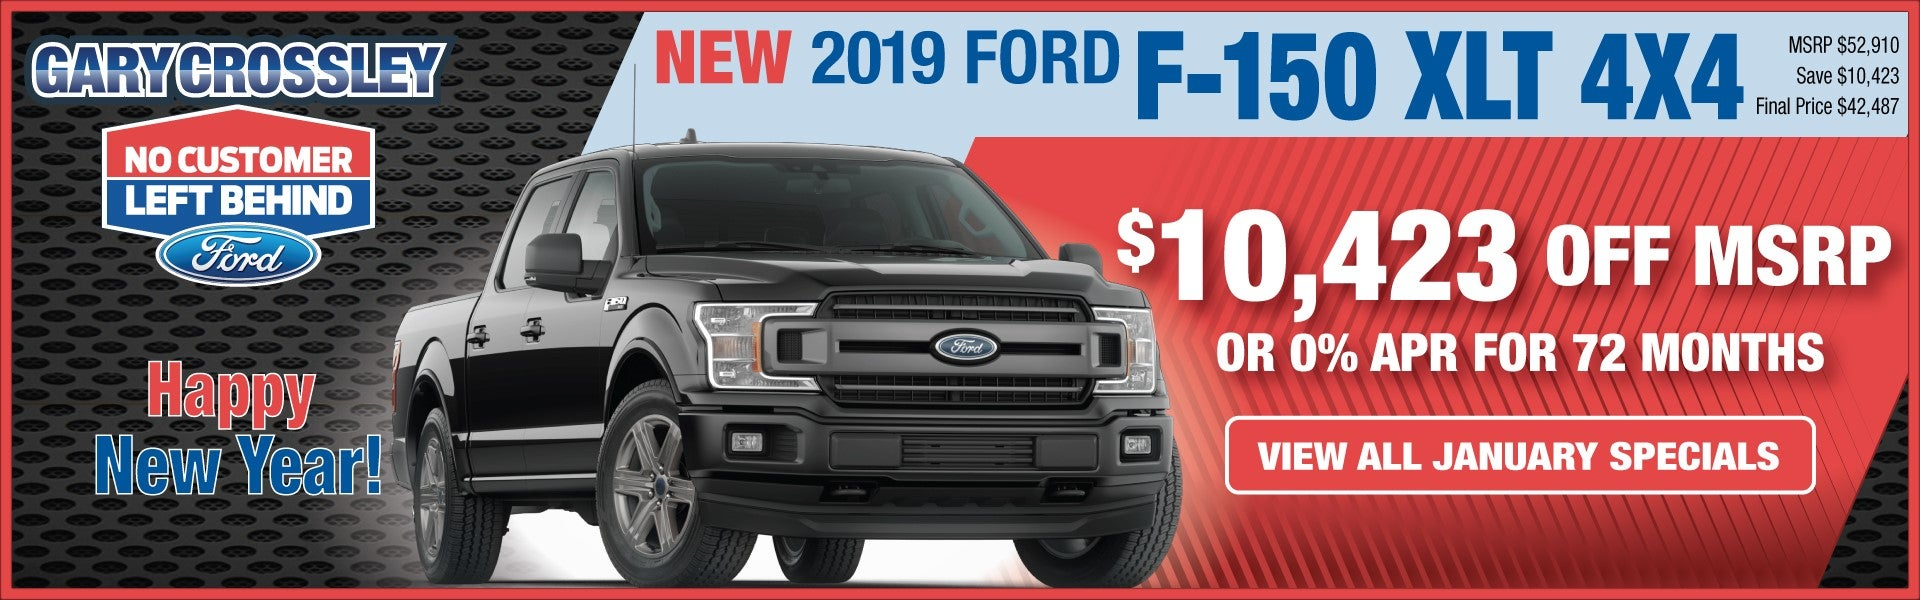 Ford Dealership Kansas City >> Ford Dealership Cars In Kansas City Mo Gary Crossley Ford